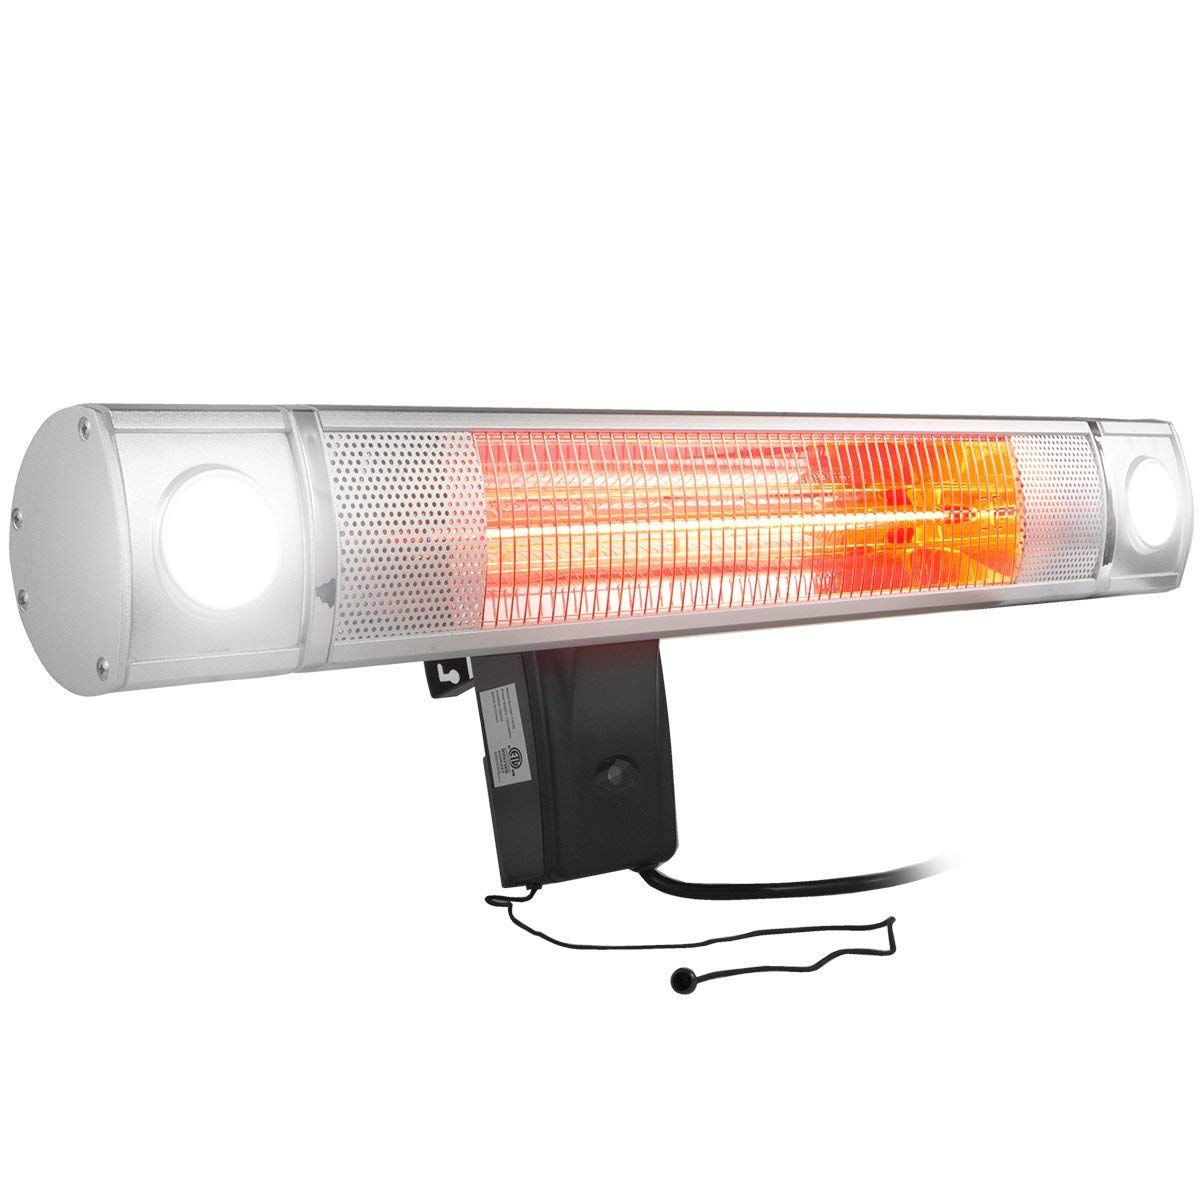 Xtremepowerus wallmounted infrared watt heater